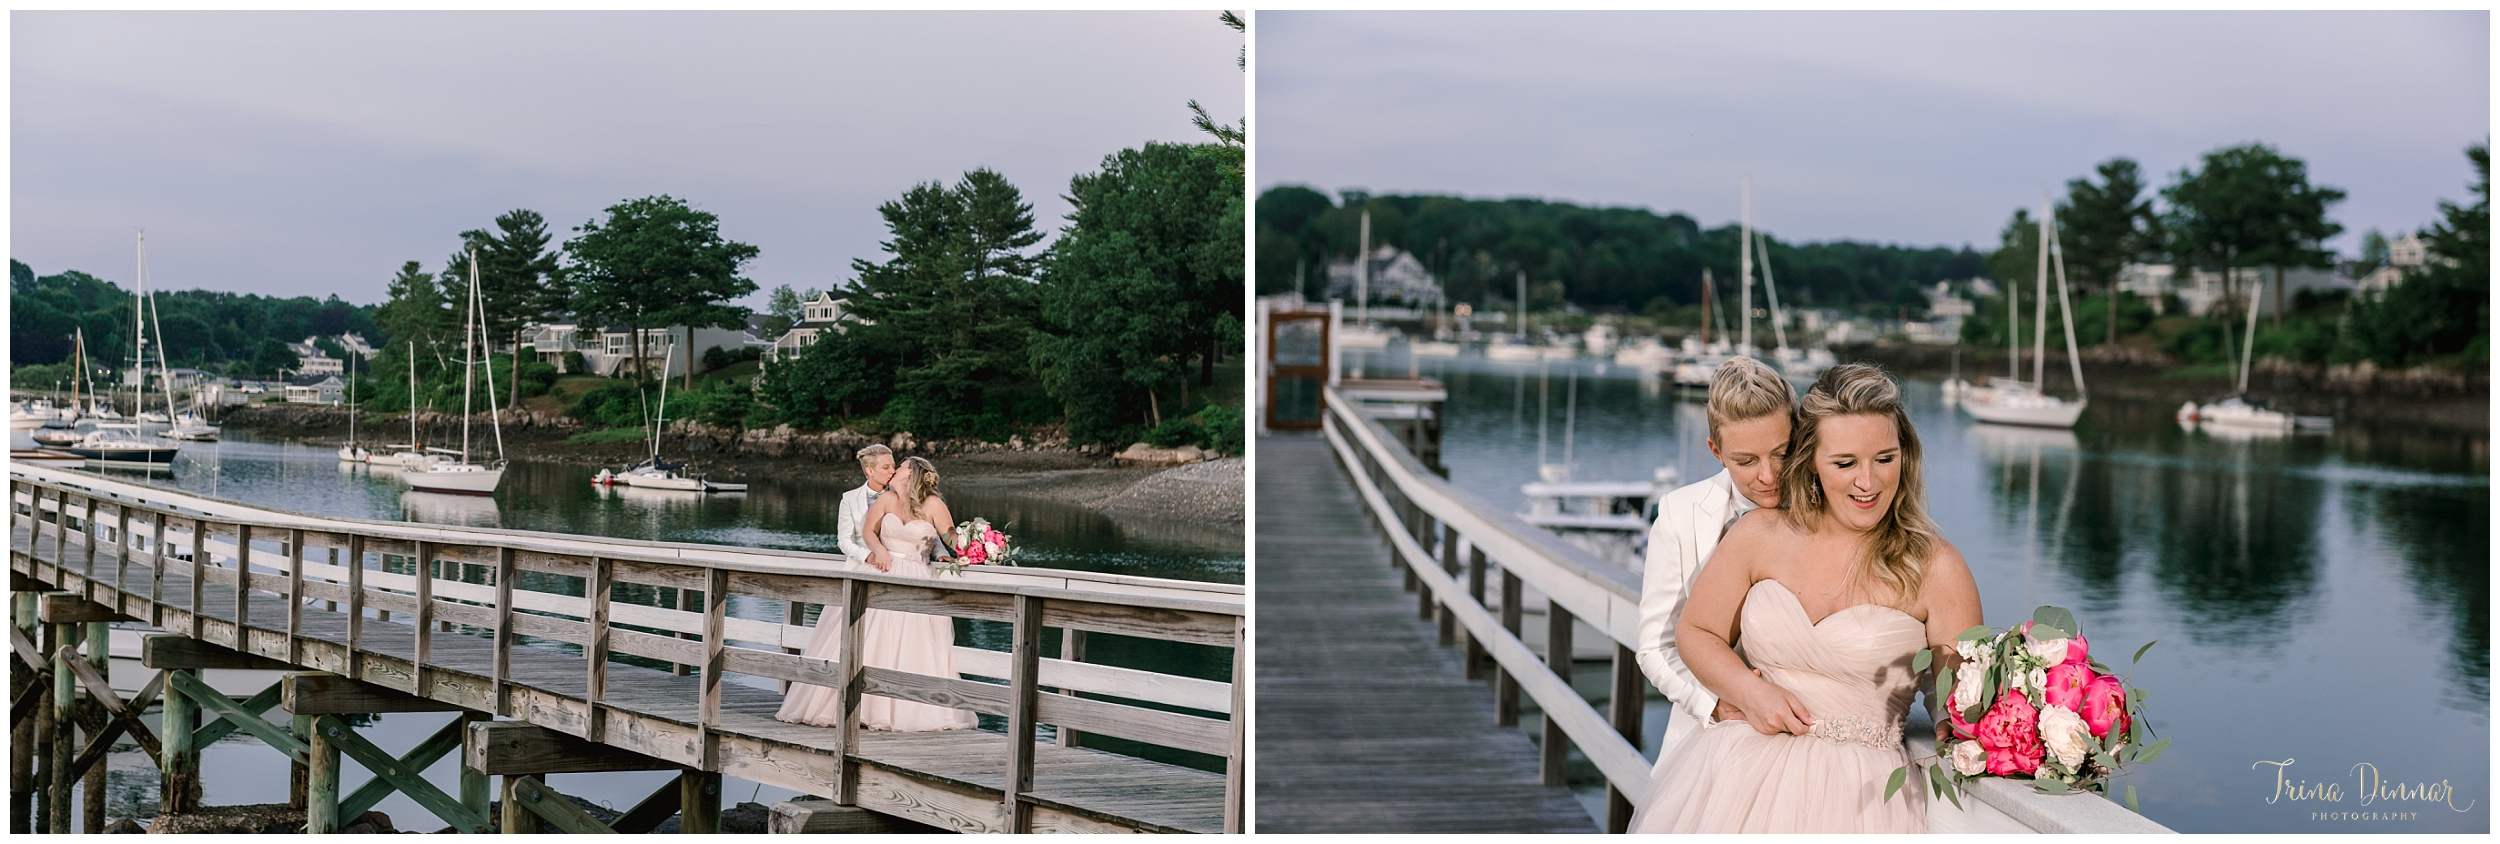 York Harbor Maine Dockside Restaurant Wedding